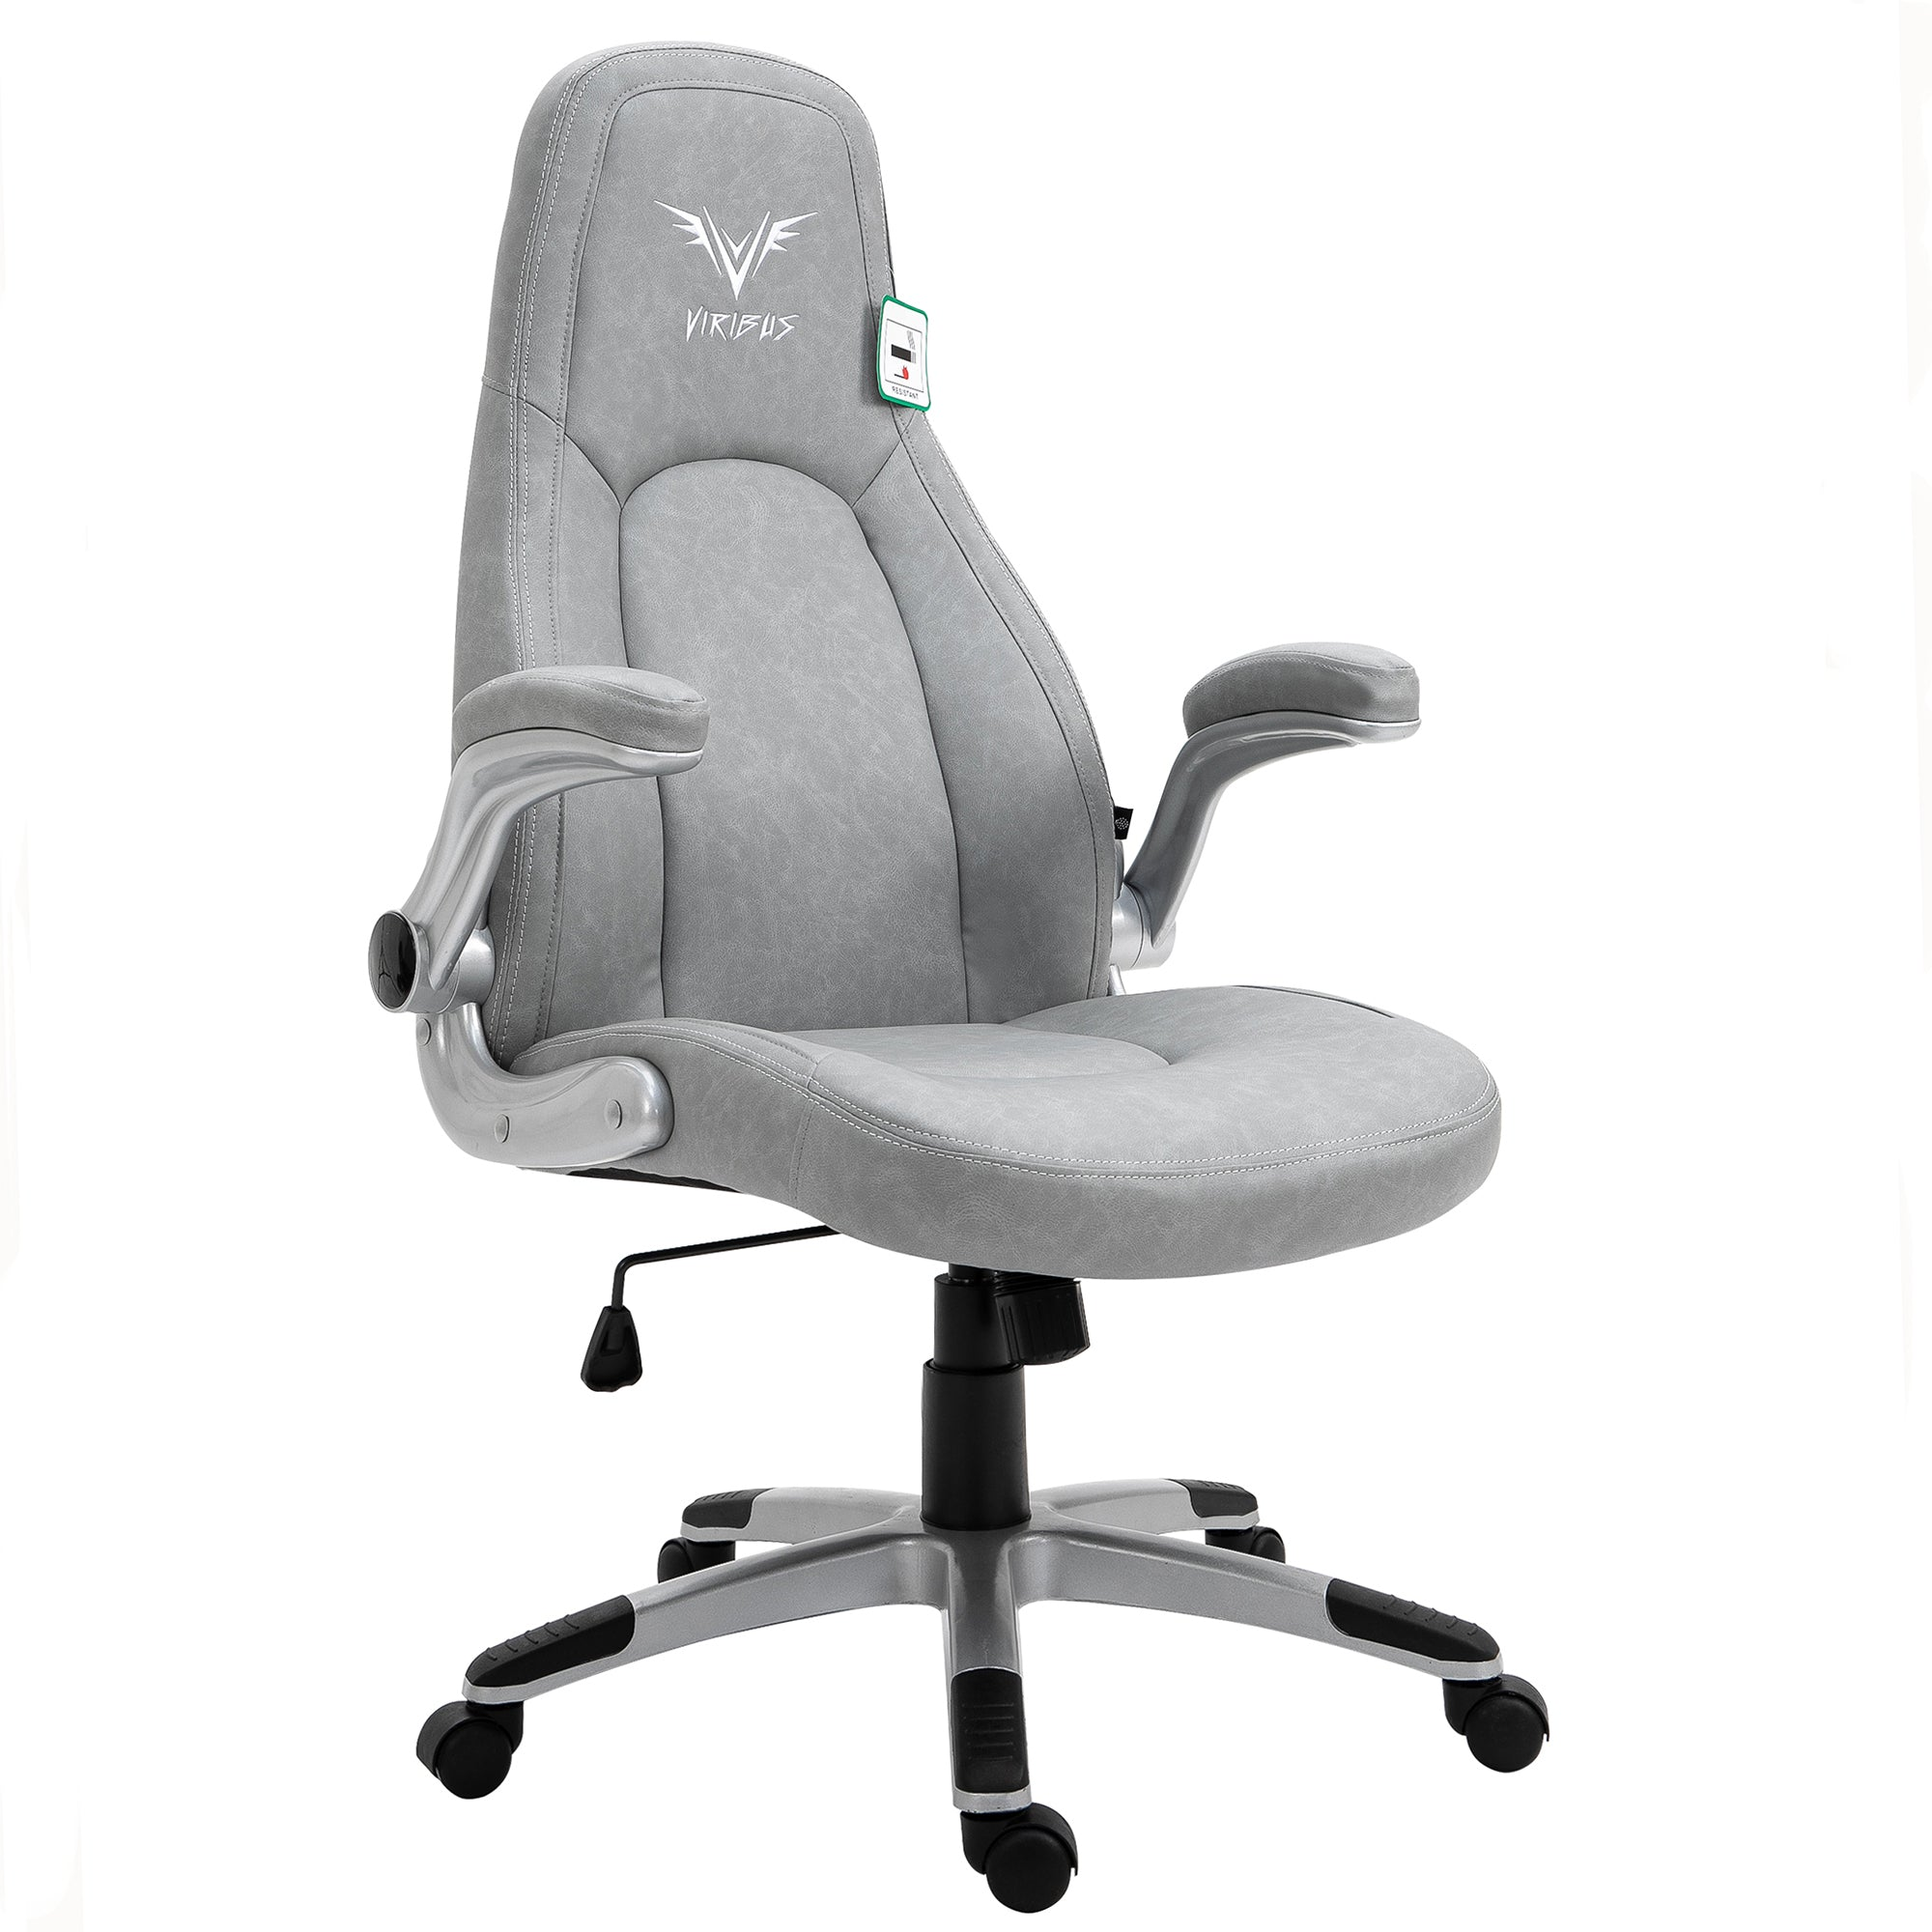 VIRIBUS X3 Faux Leather Gaming Chair with Adjustable Arms in Grey 10